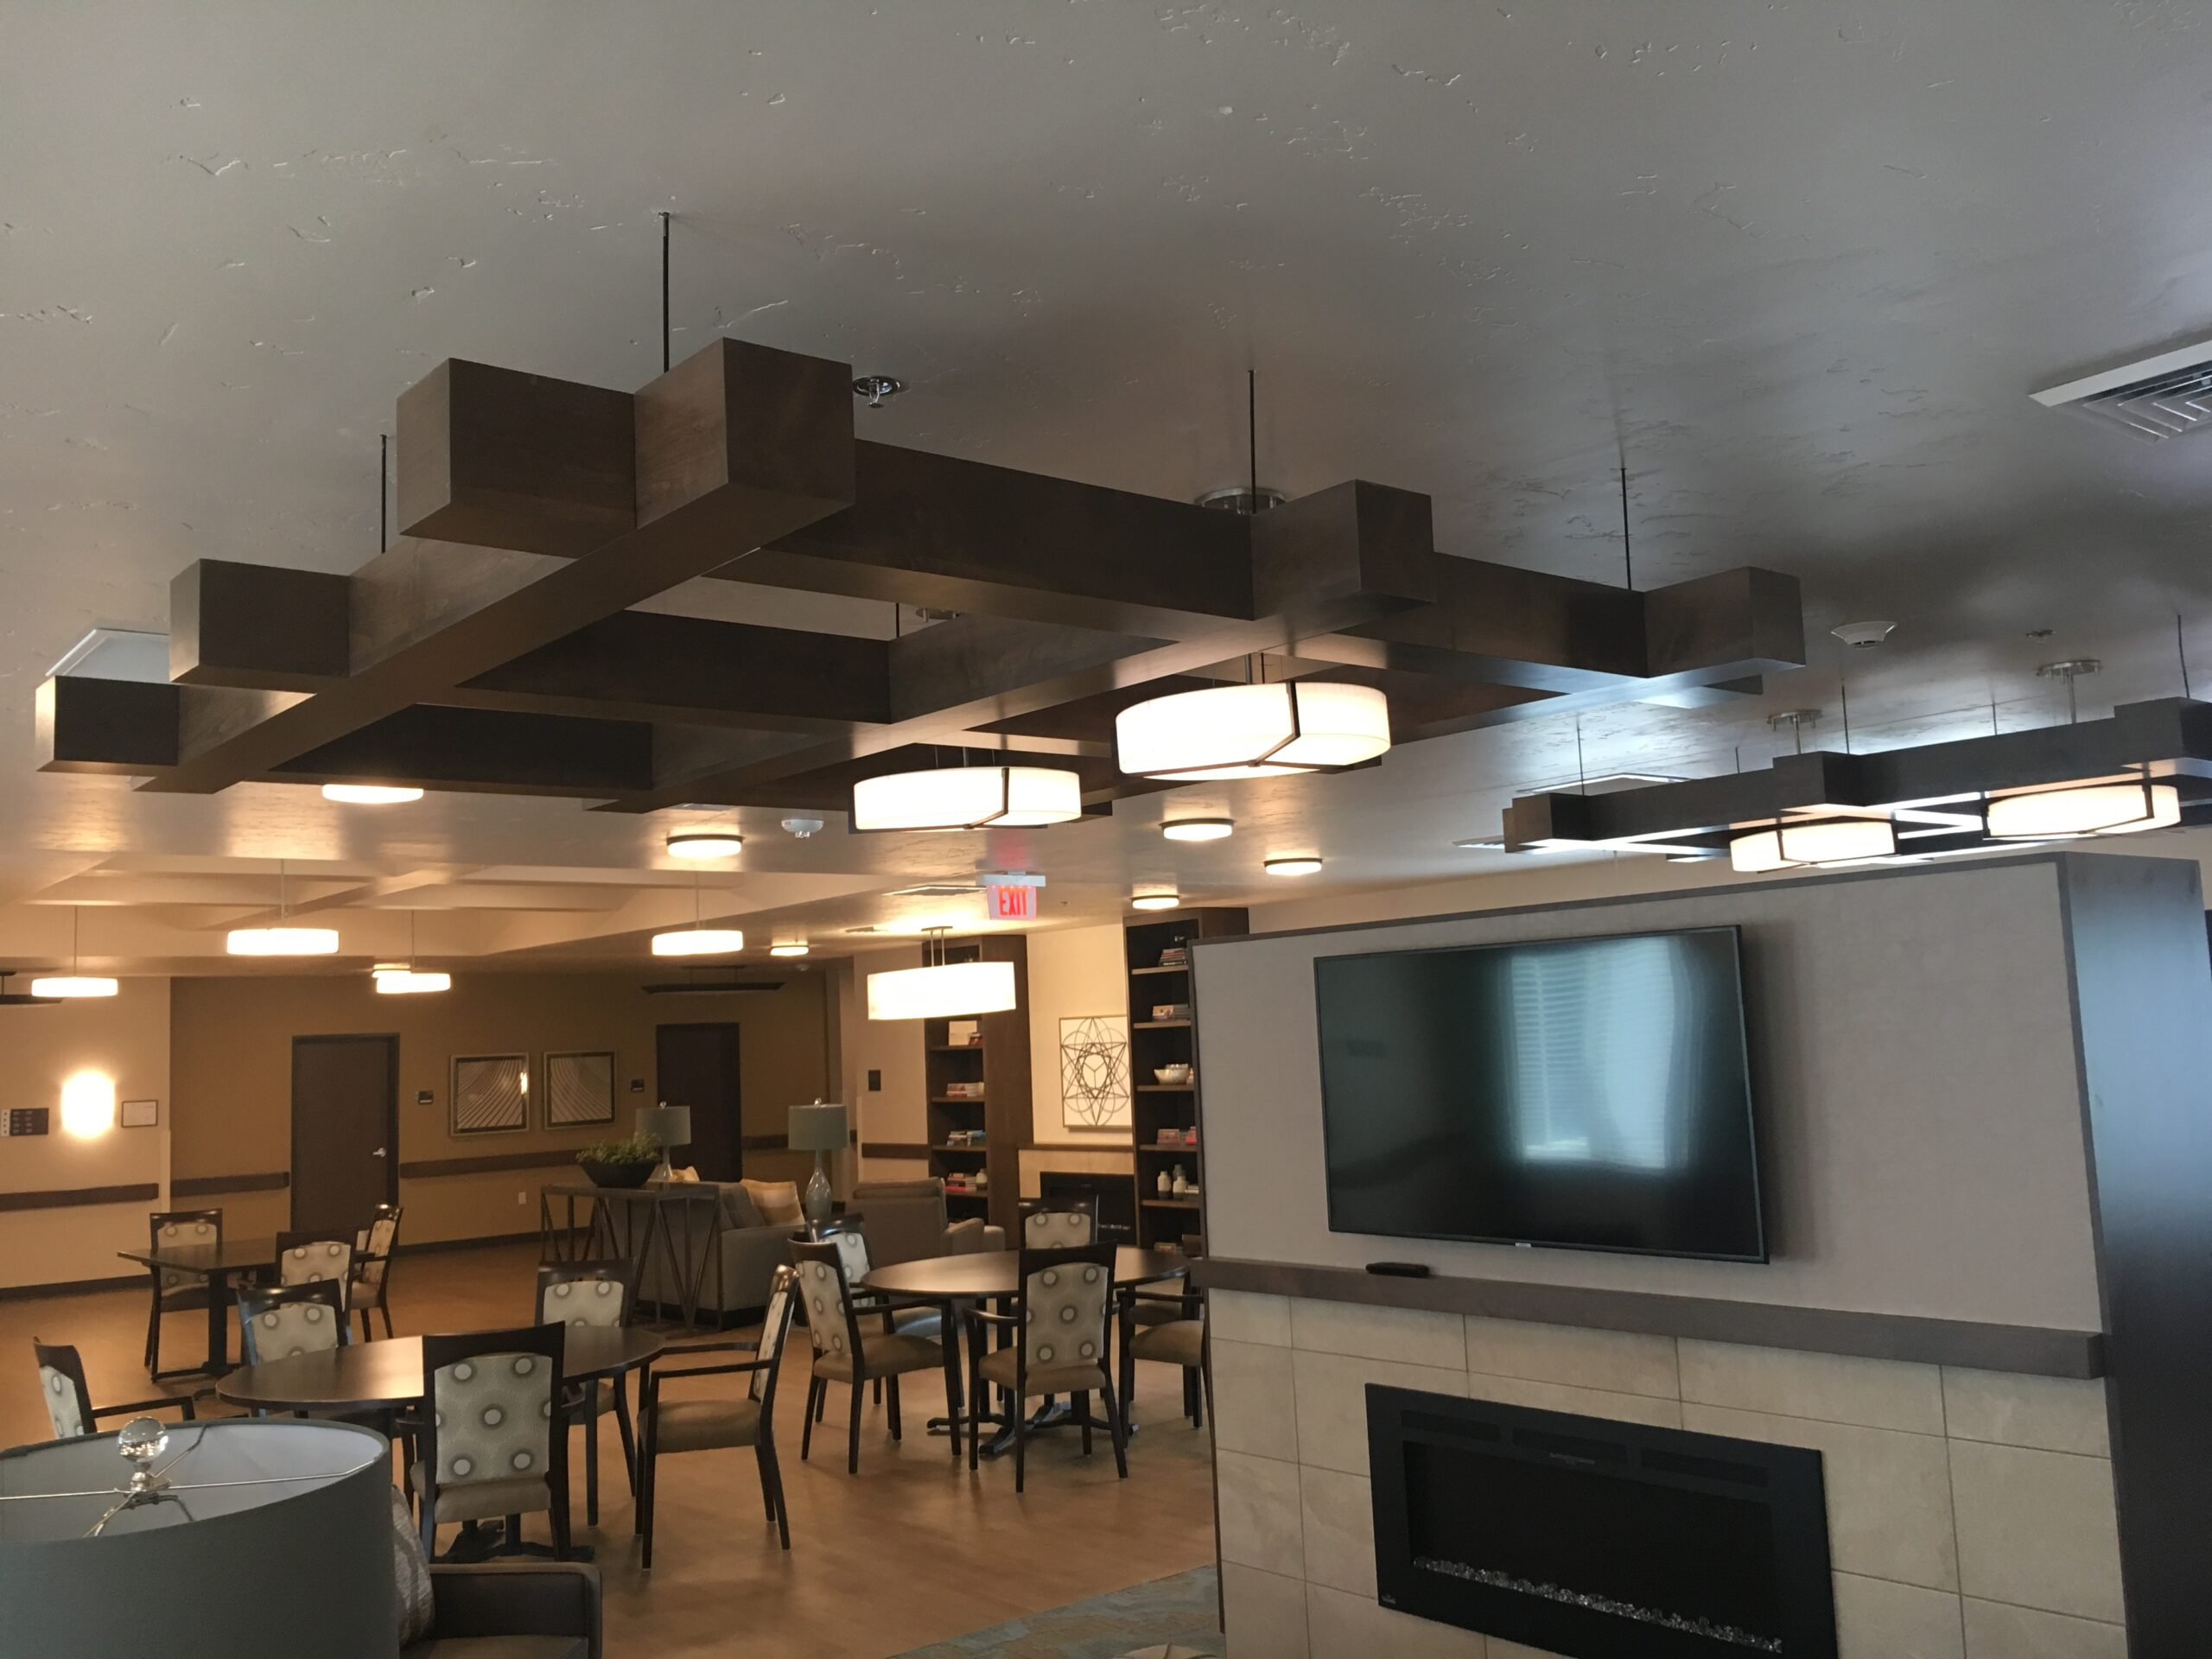 Sawtooth Concepts Ceiling Beam project